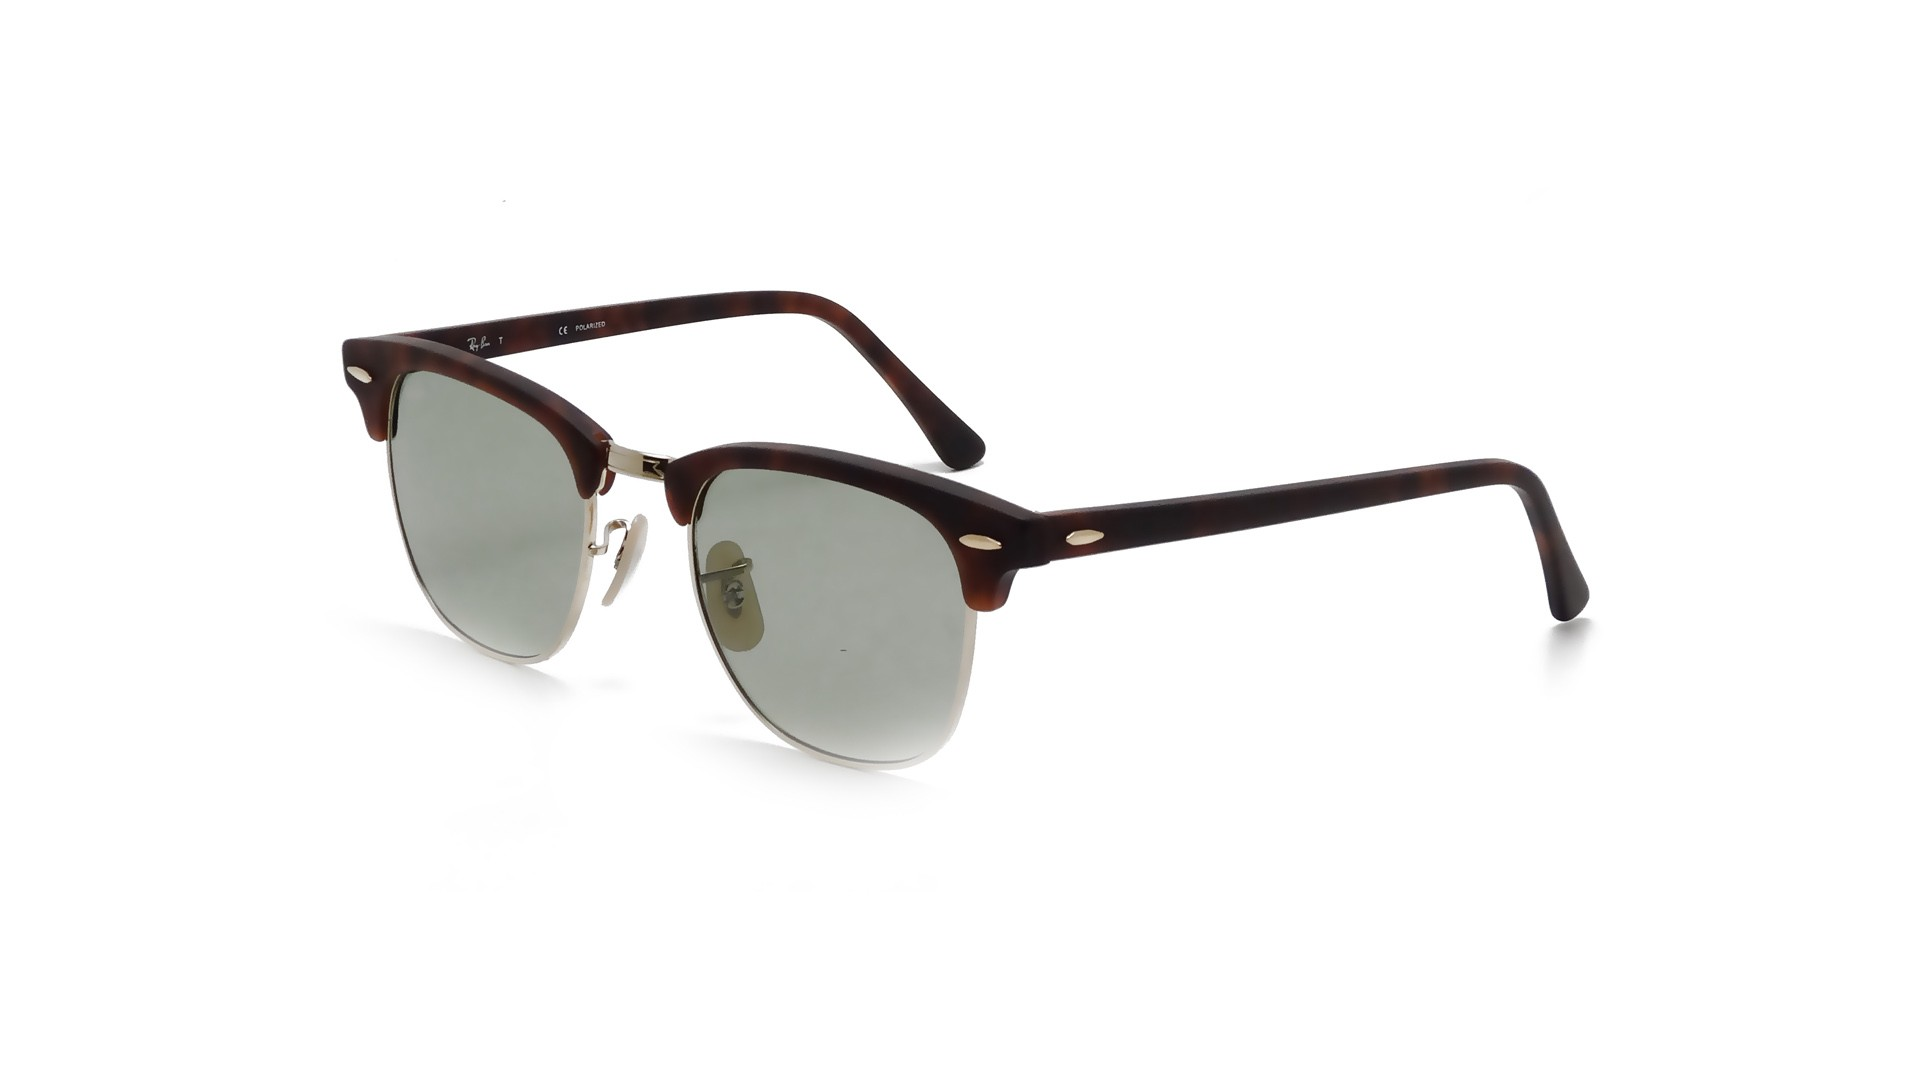 7574ed19a4b830 Ray Ban Rb3016 Clubmaster W0365 51